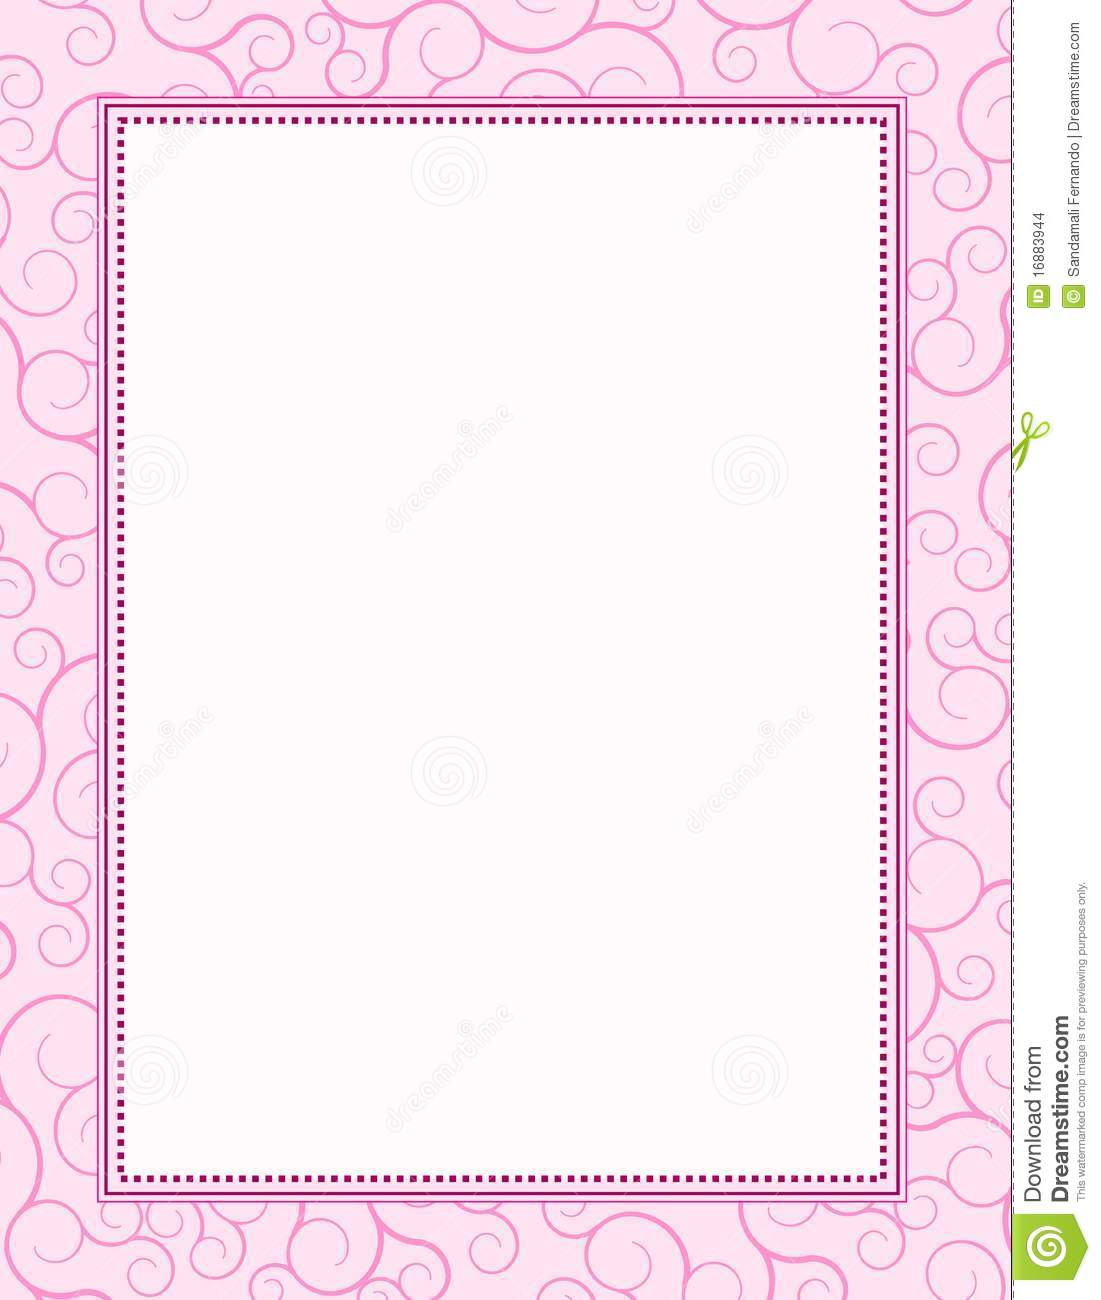 Invitation background frame stock vector illustration of clipart invitation background frame stopboris Image collections